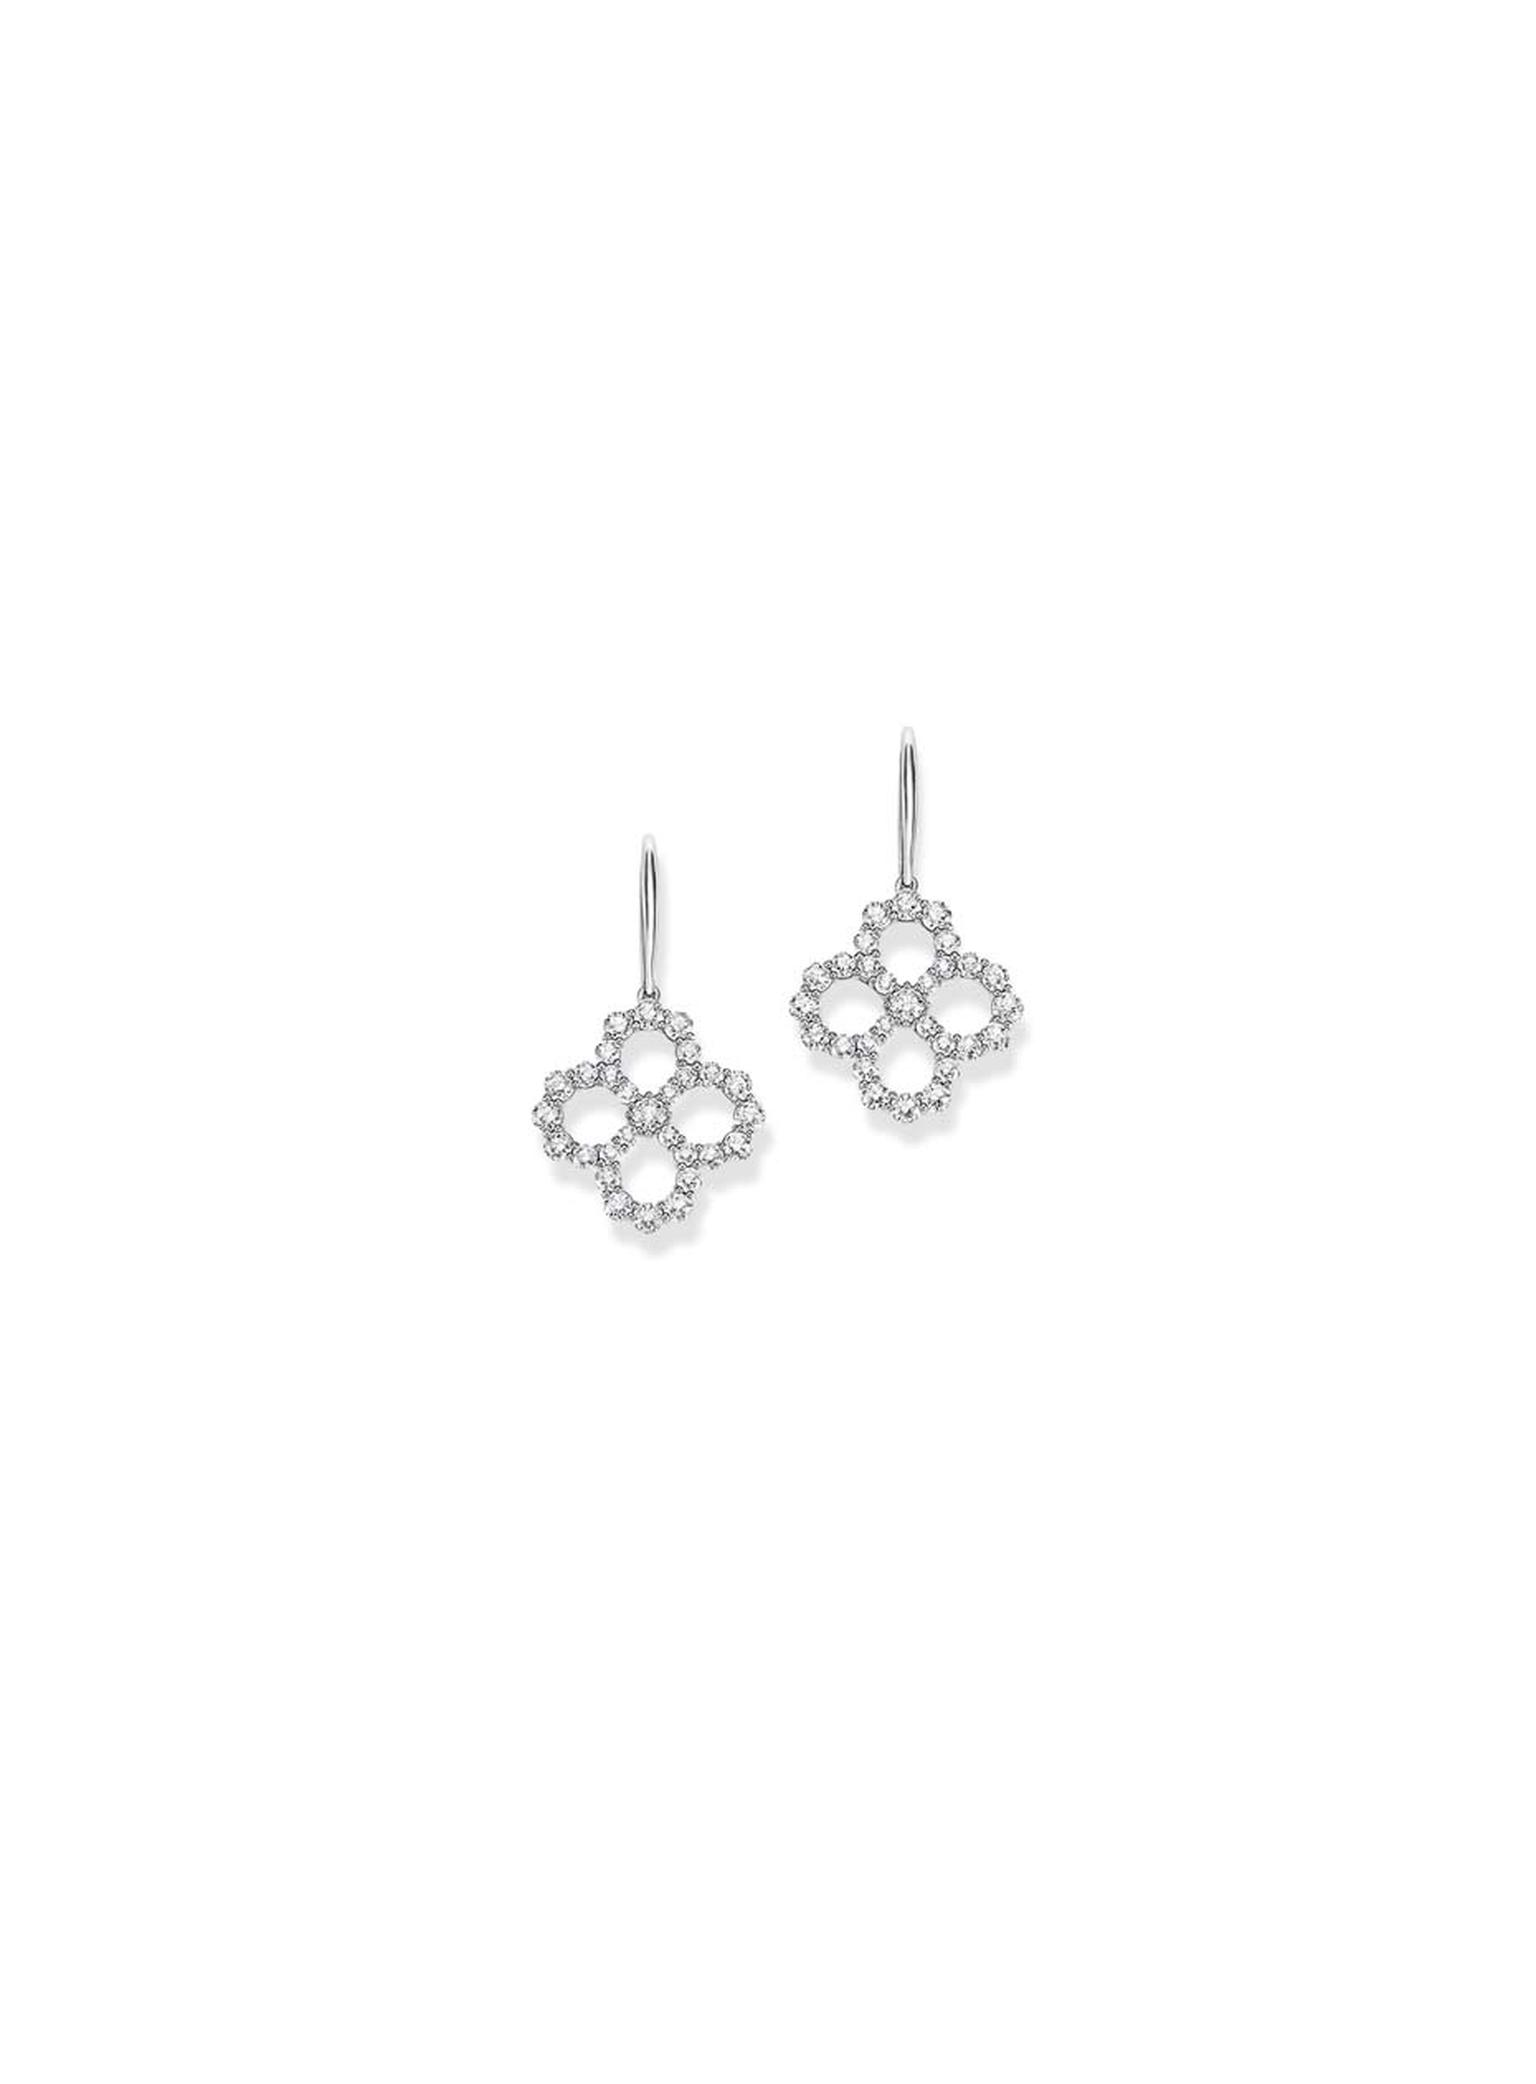 Harry Winston platinum Diamond Loop collection drop earrings.